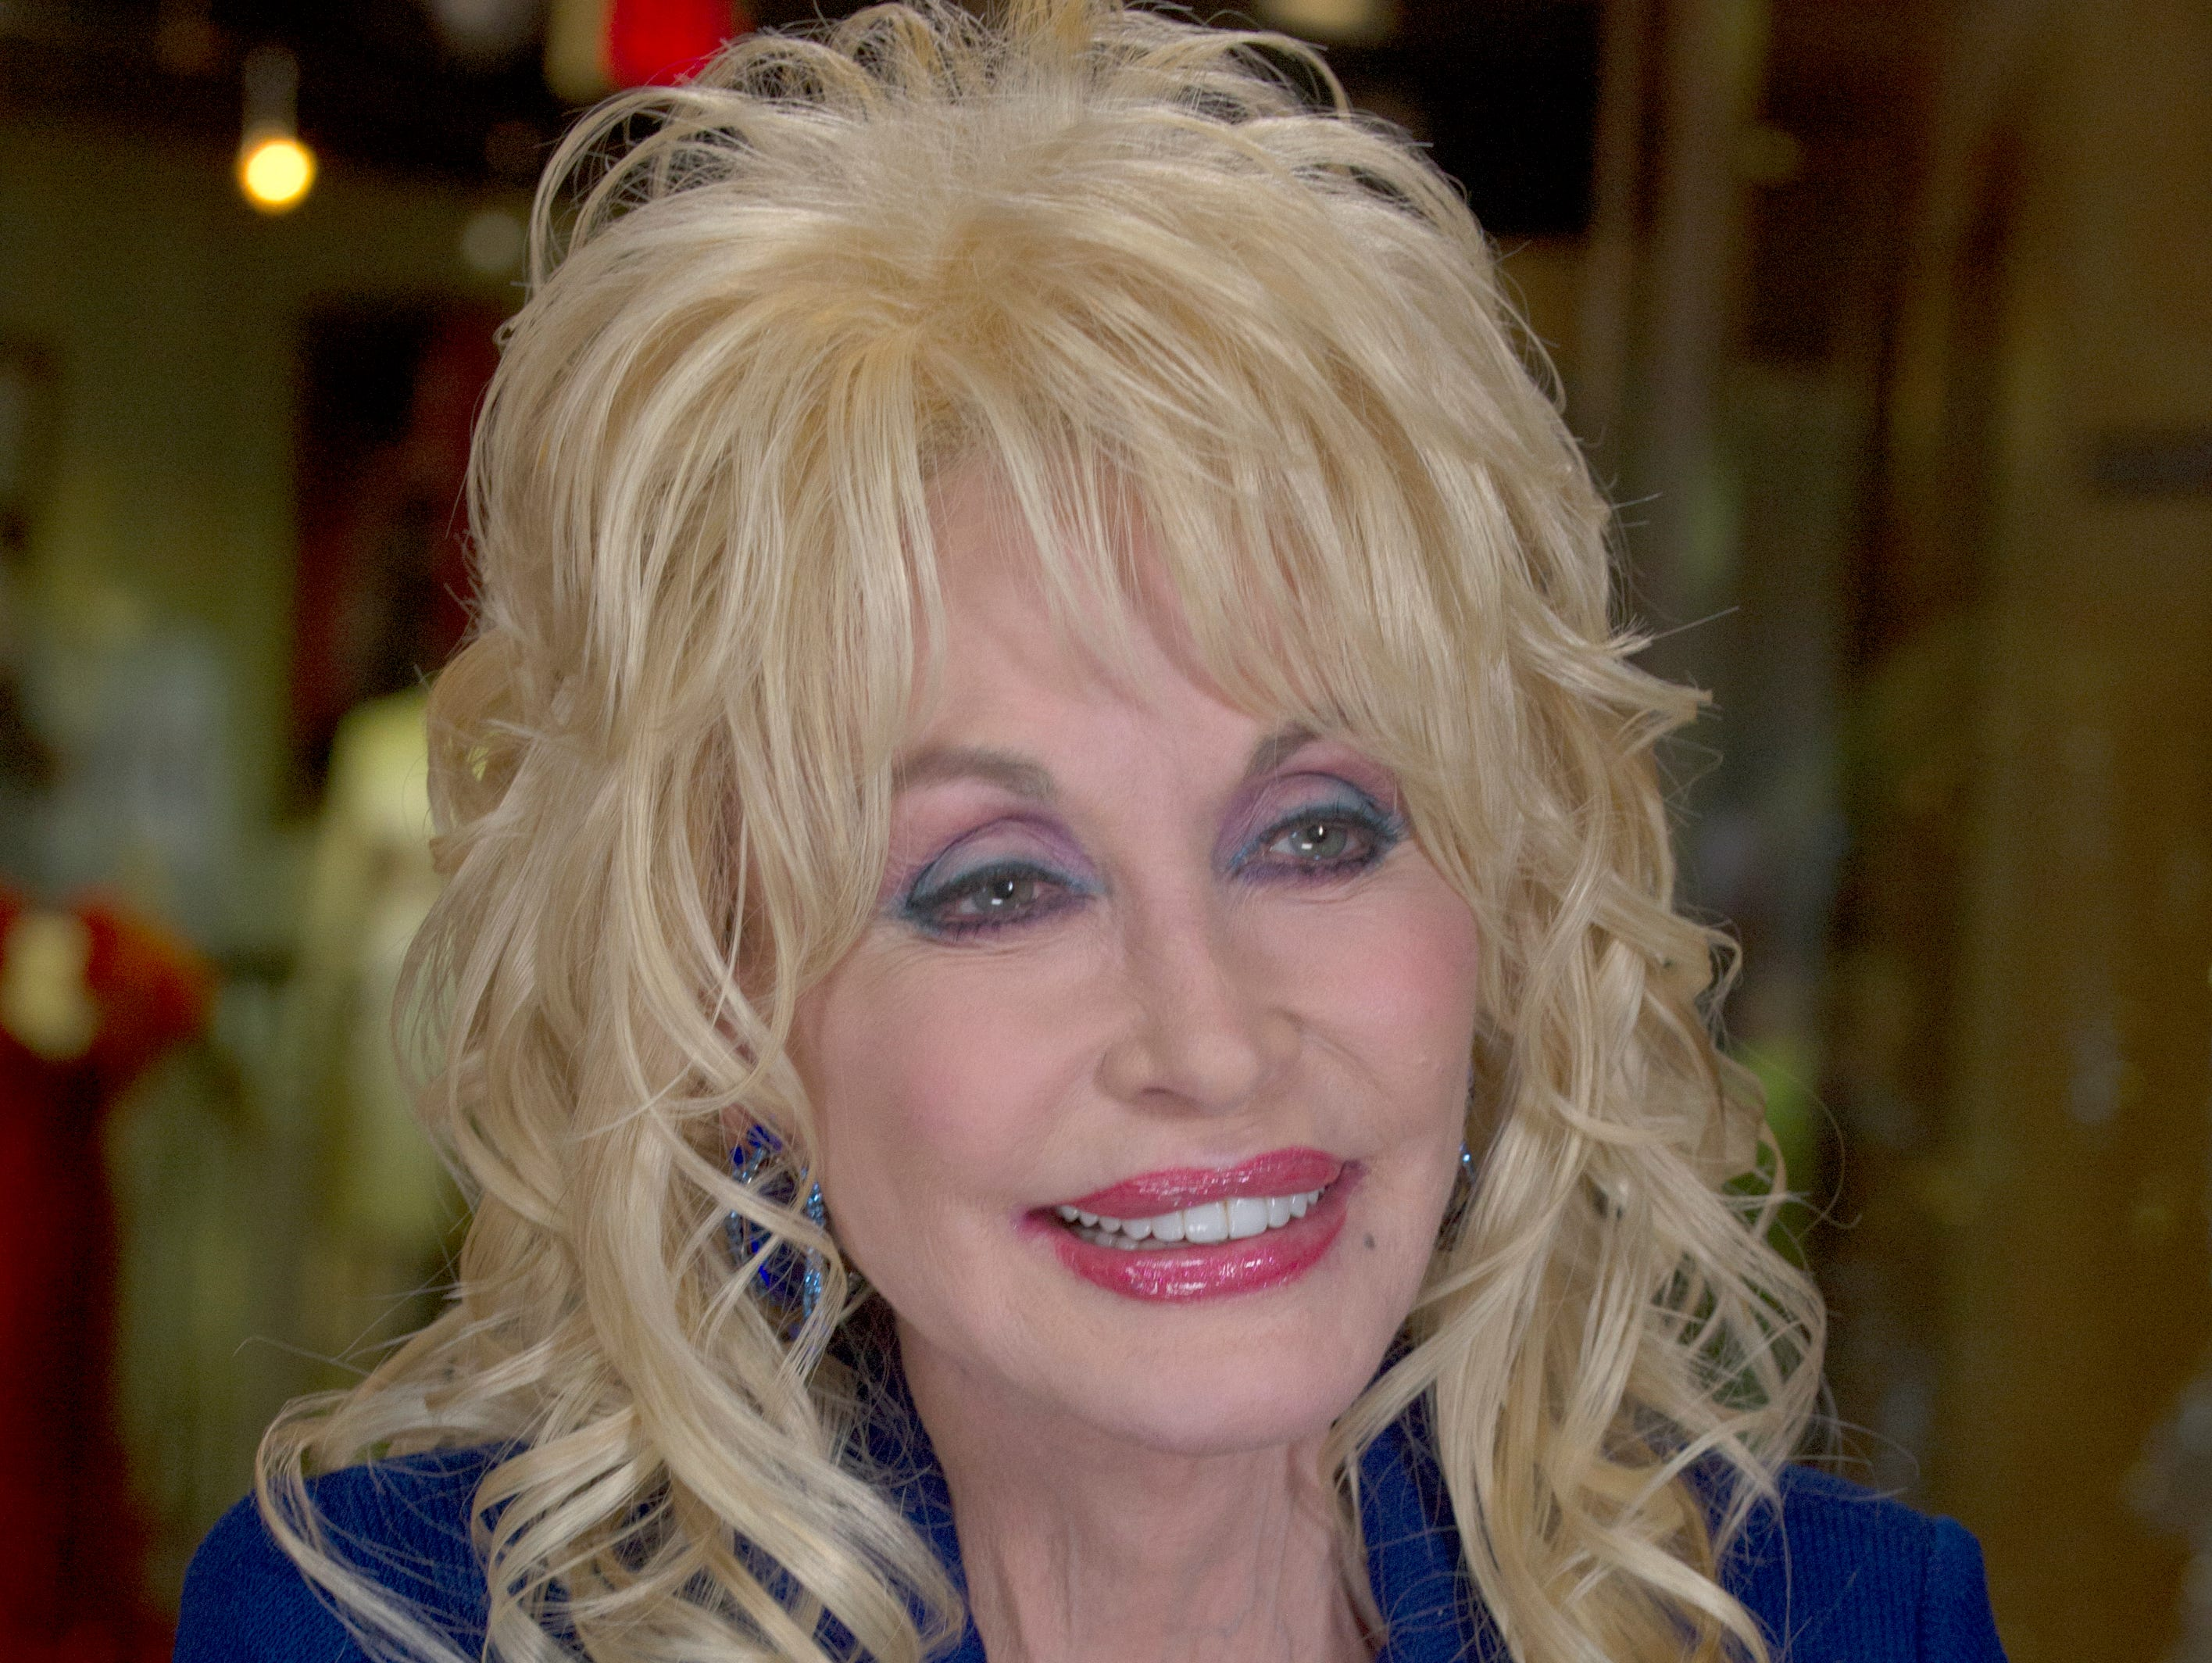 Dolly Parton during an interview at Dollywood Friday, Mar. 21, 2014 for the new Firechaser ride.